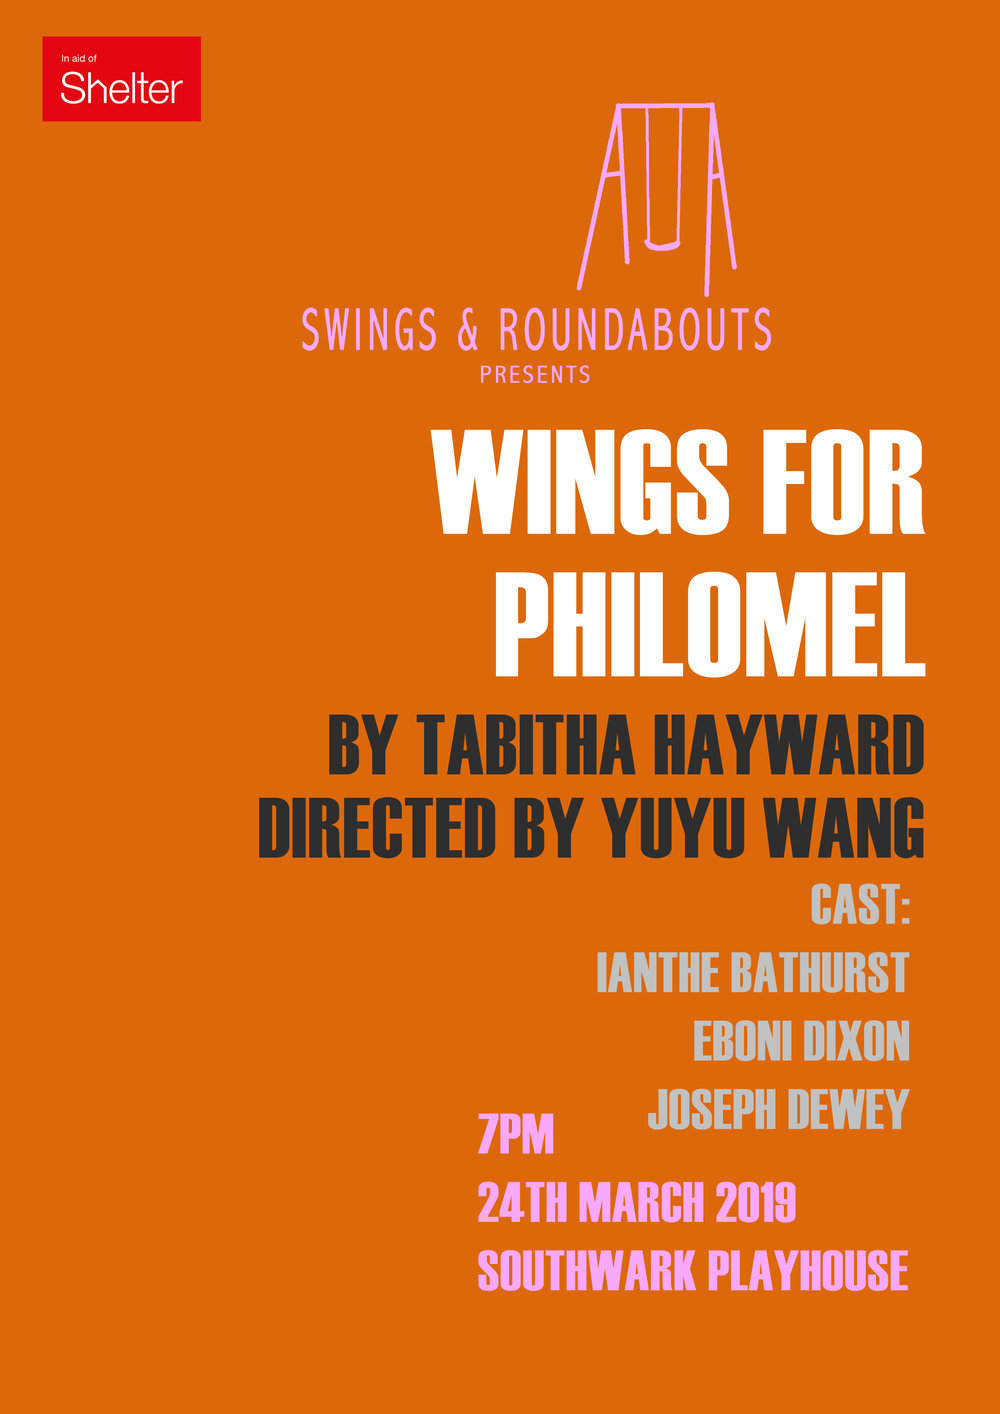 WINGS FOR PHILOMEL.jpg